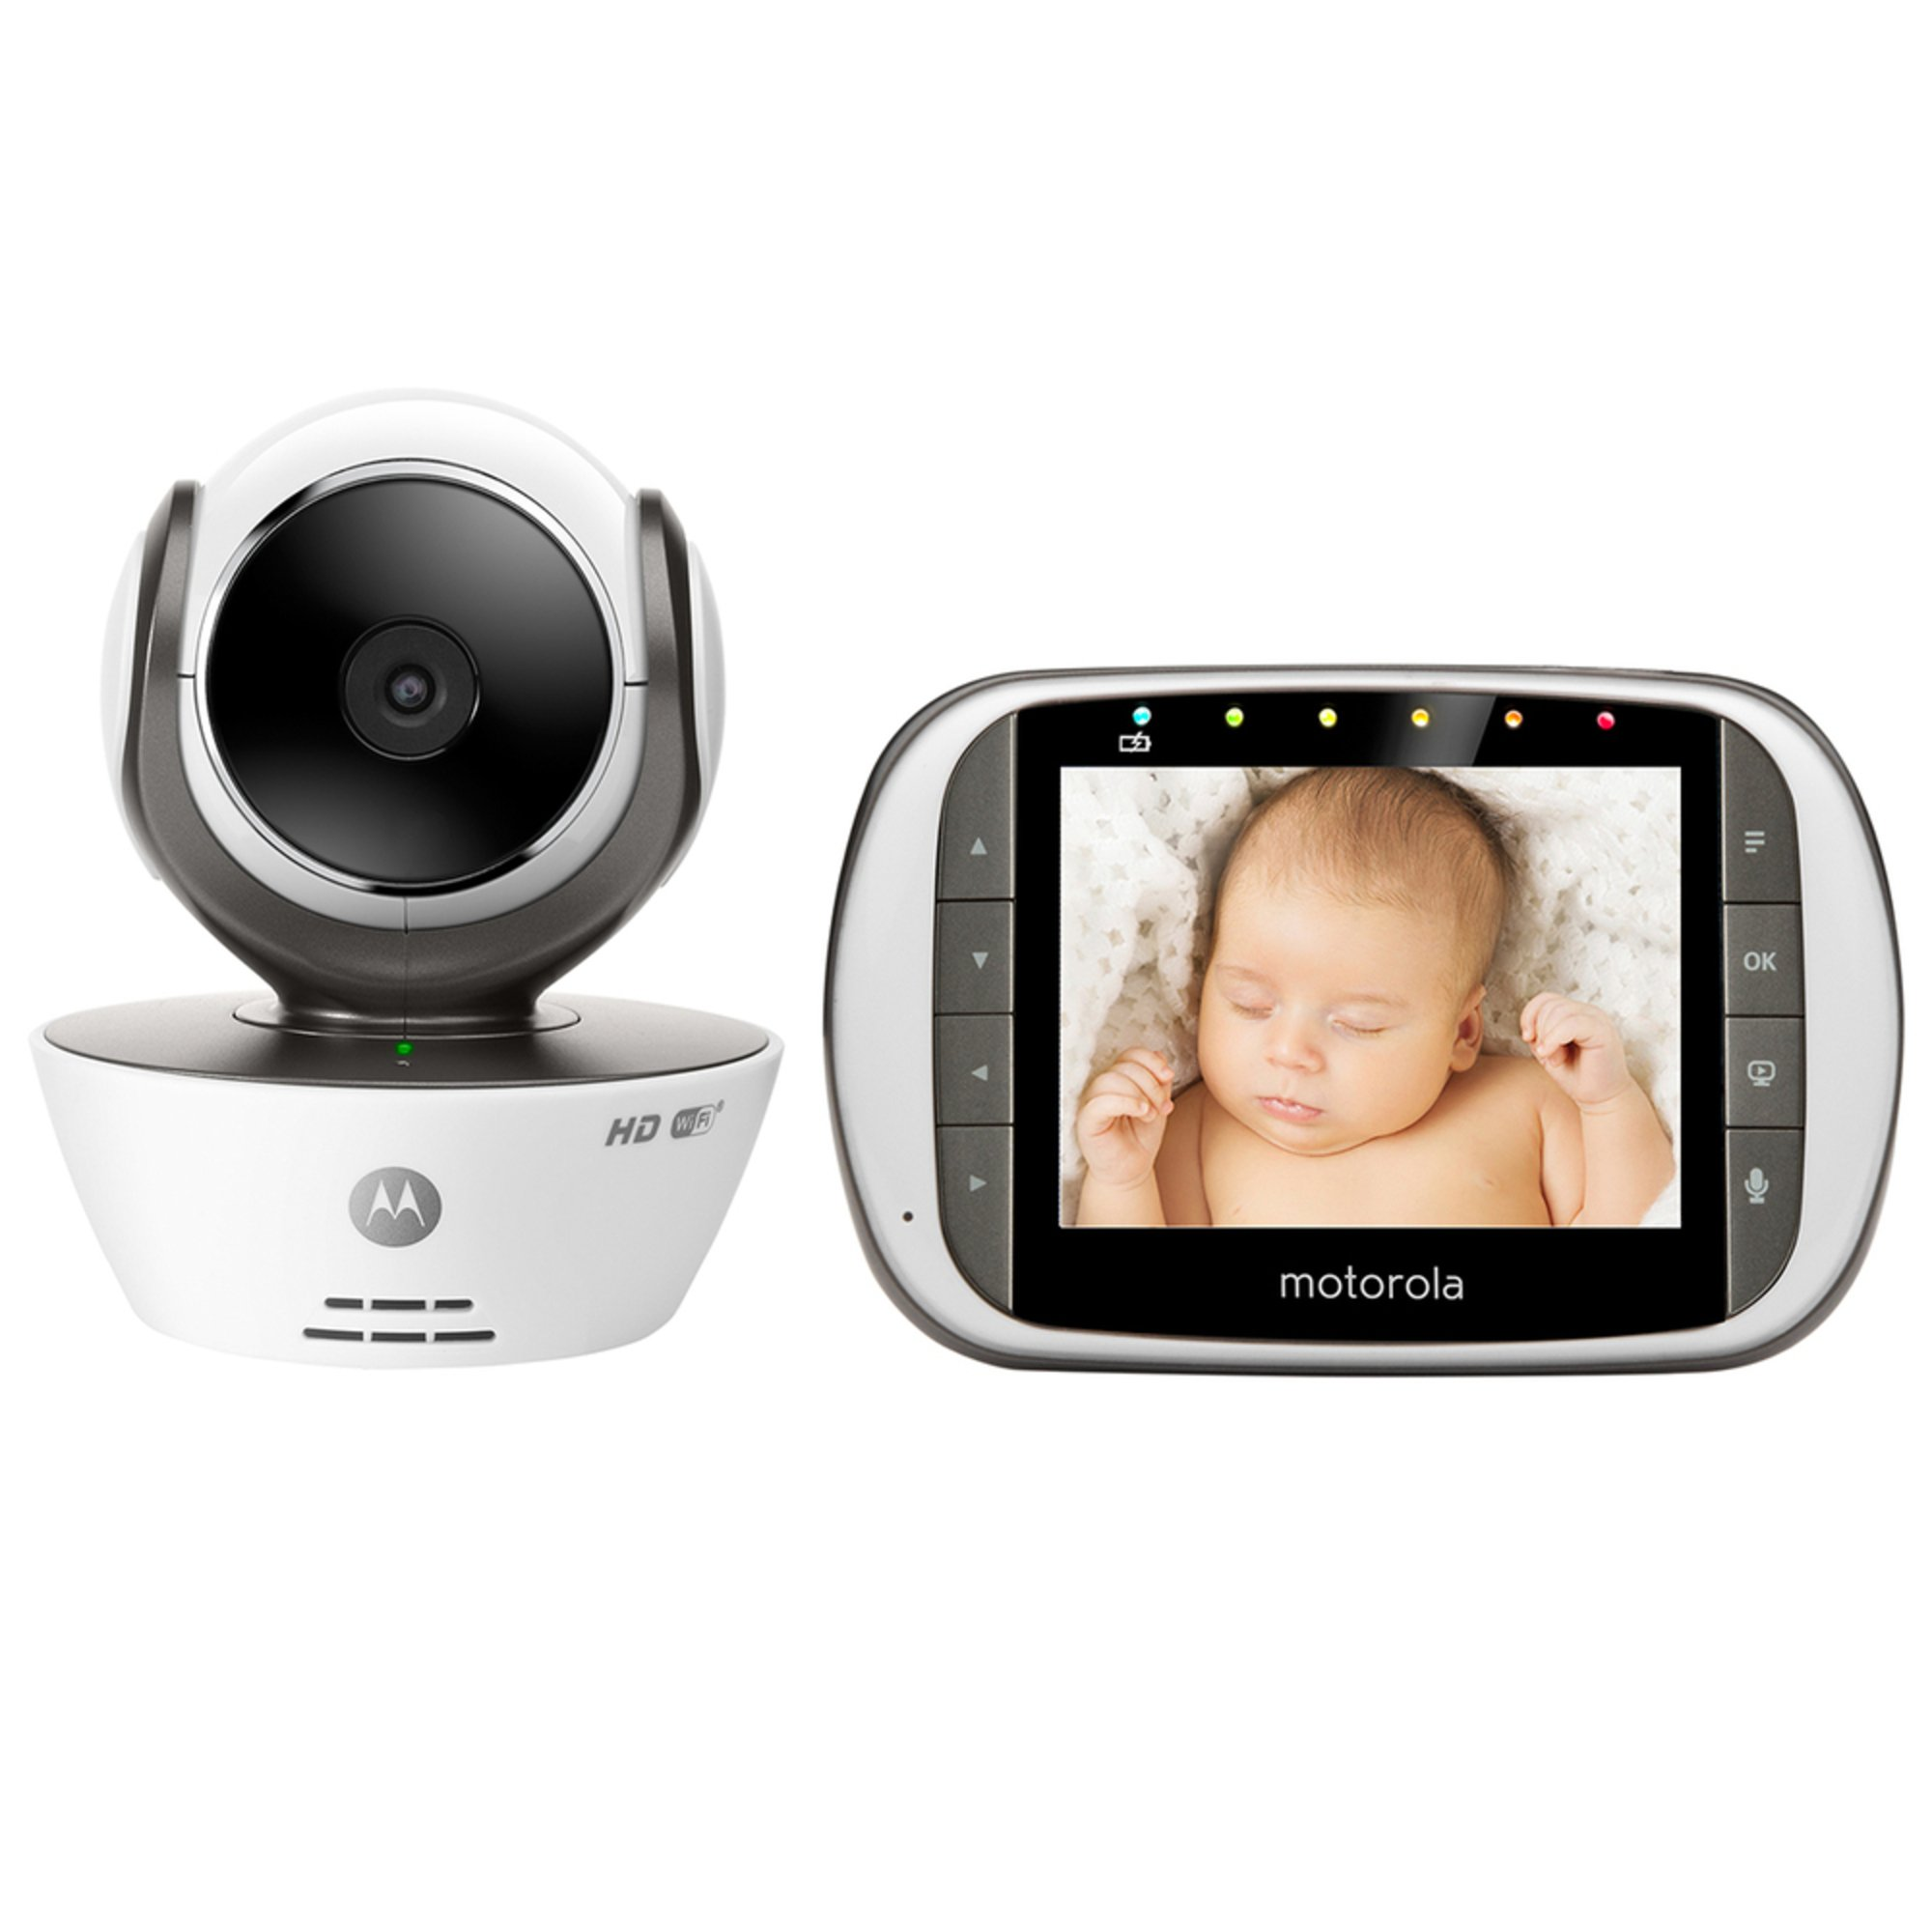 motorola mbp853connect digital video baby monitor with wi fi internet viewing wi fi baby. Black Bedroom Furniture Sets. Home Design Ideas